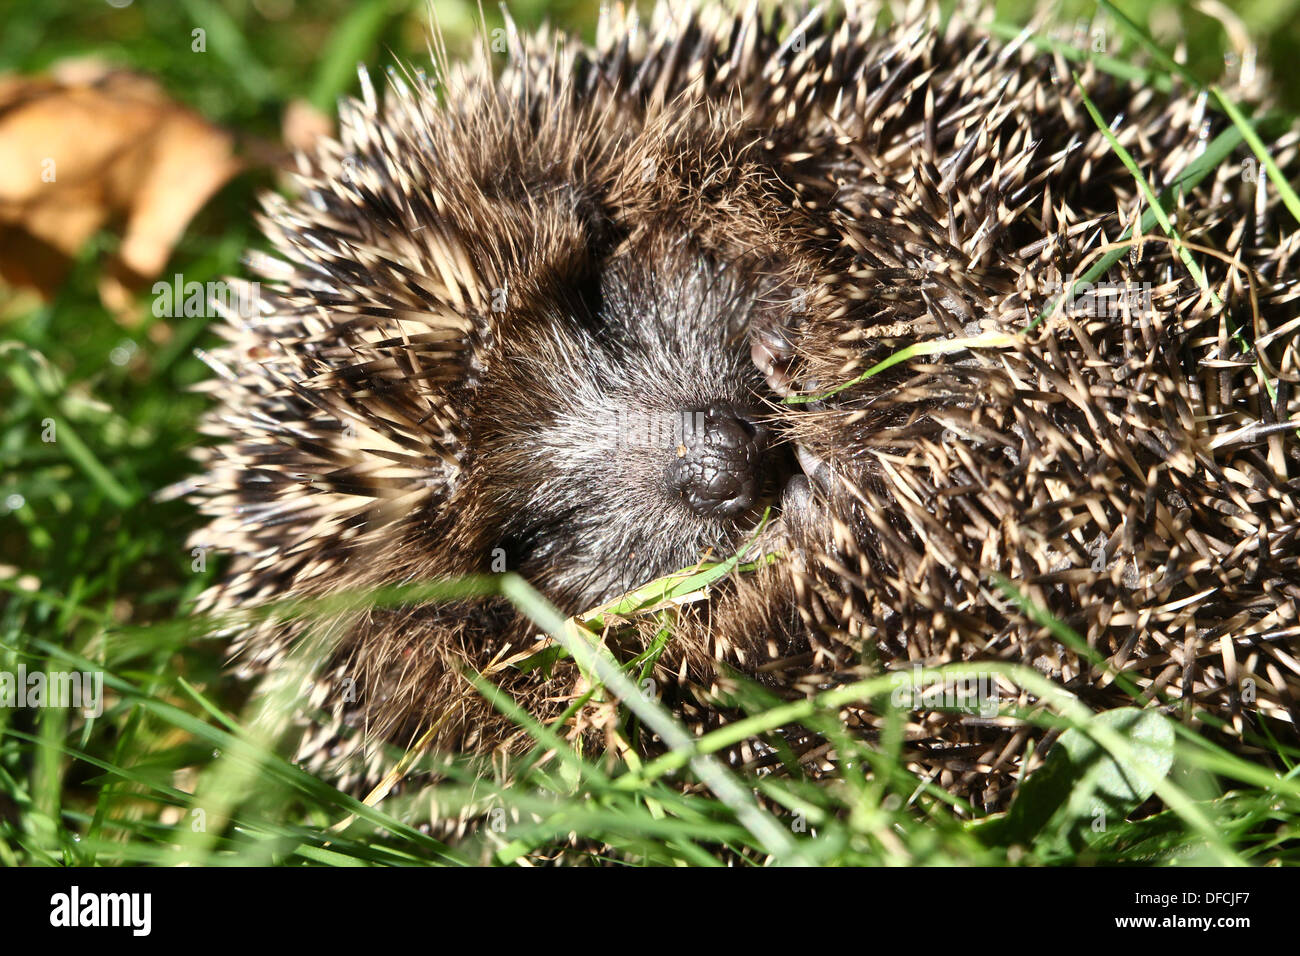 Close-up of a western Hedgehog (Erinaceus europaeus) all rolled up in a ball - Stock Image